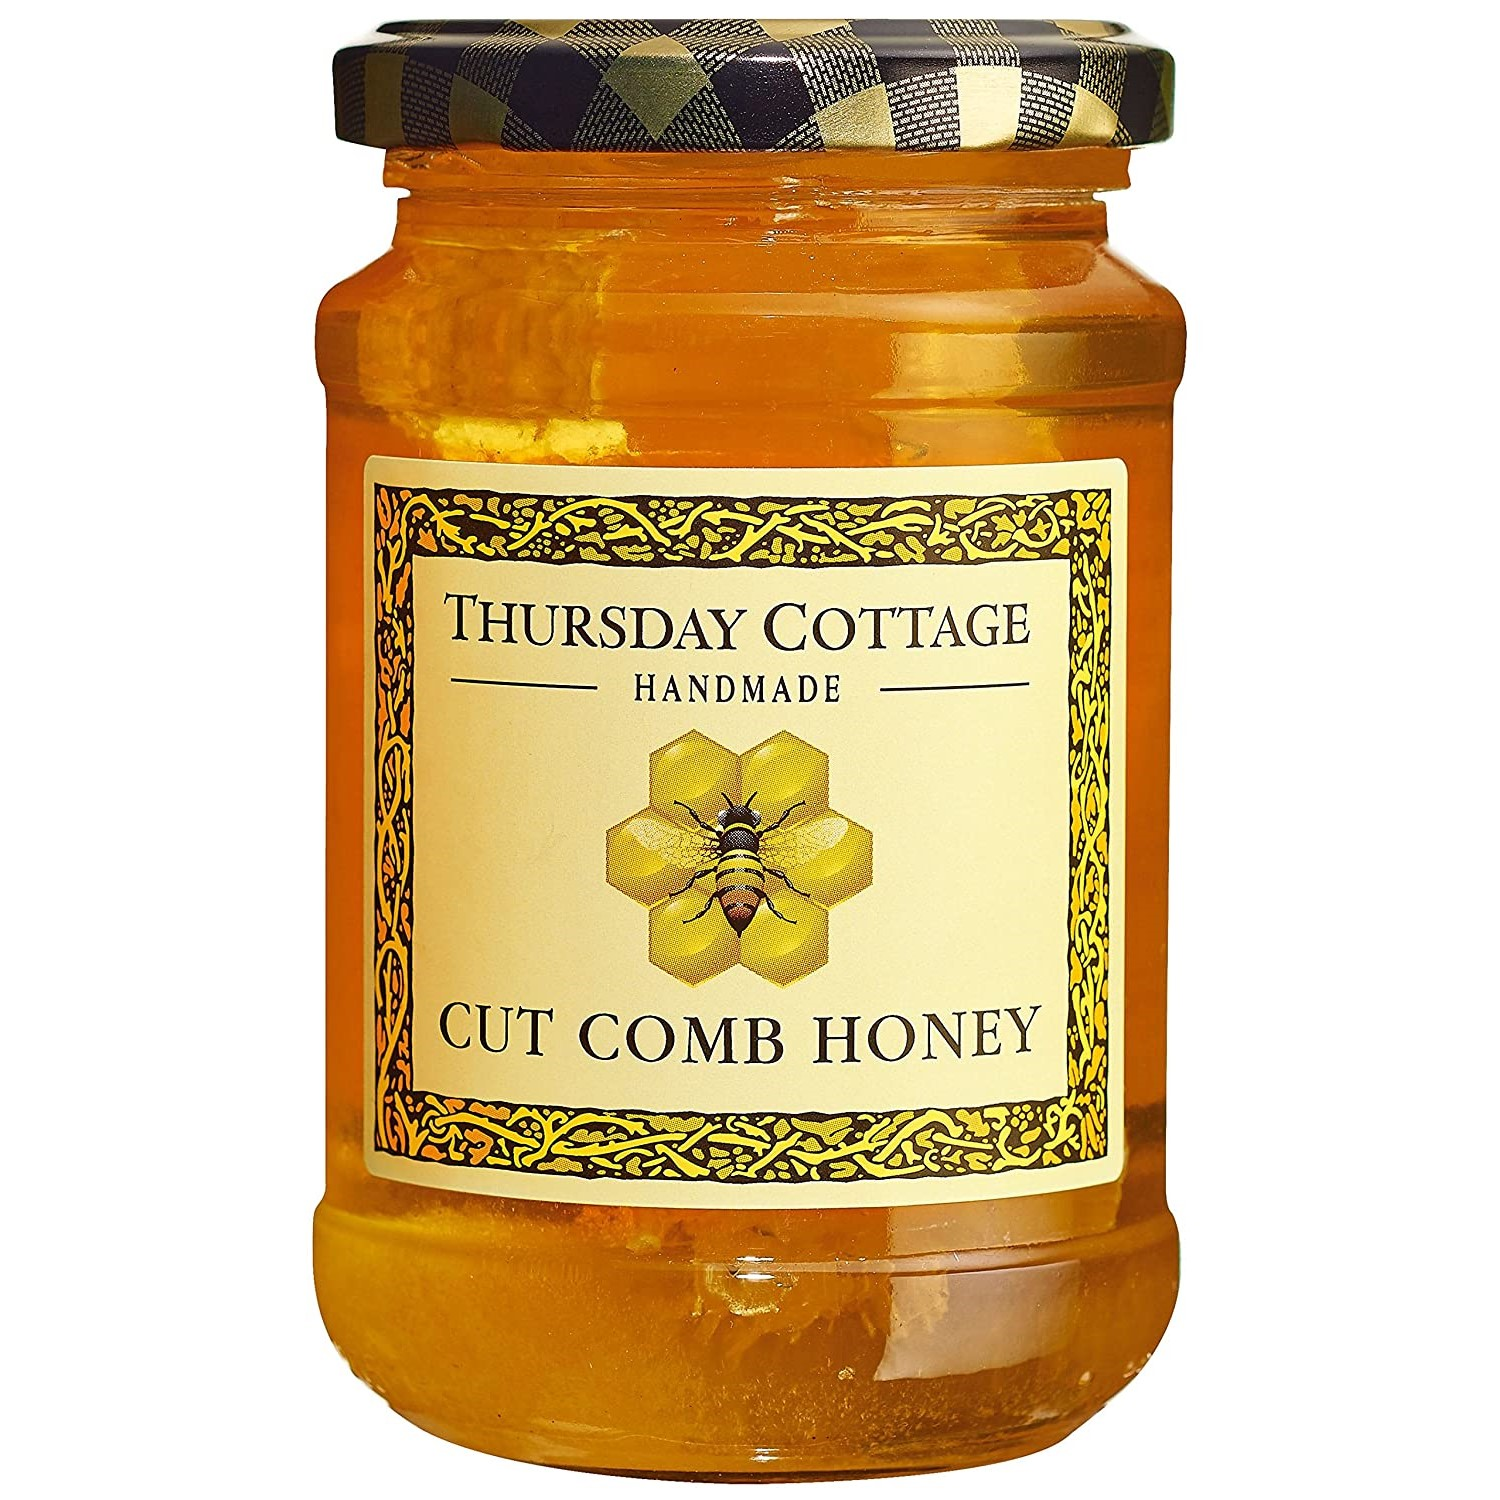 Thursday Cottage Handmade Cut Comb Honey 340g